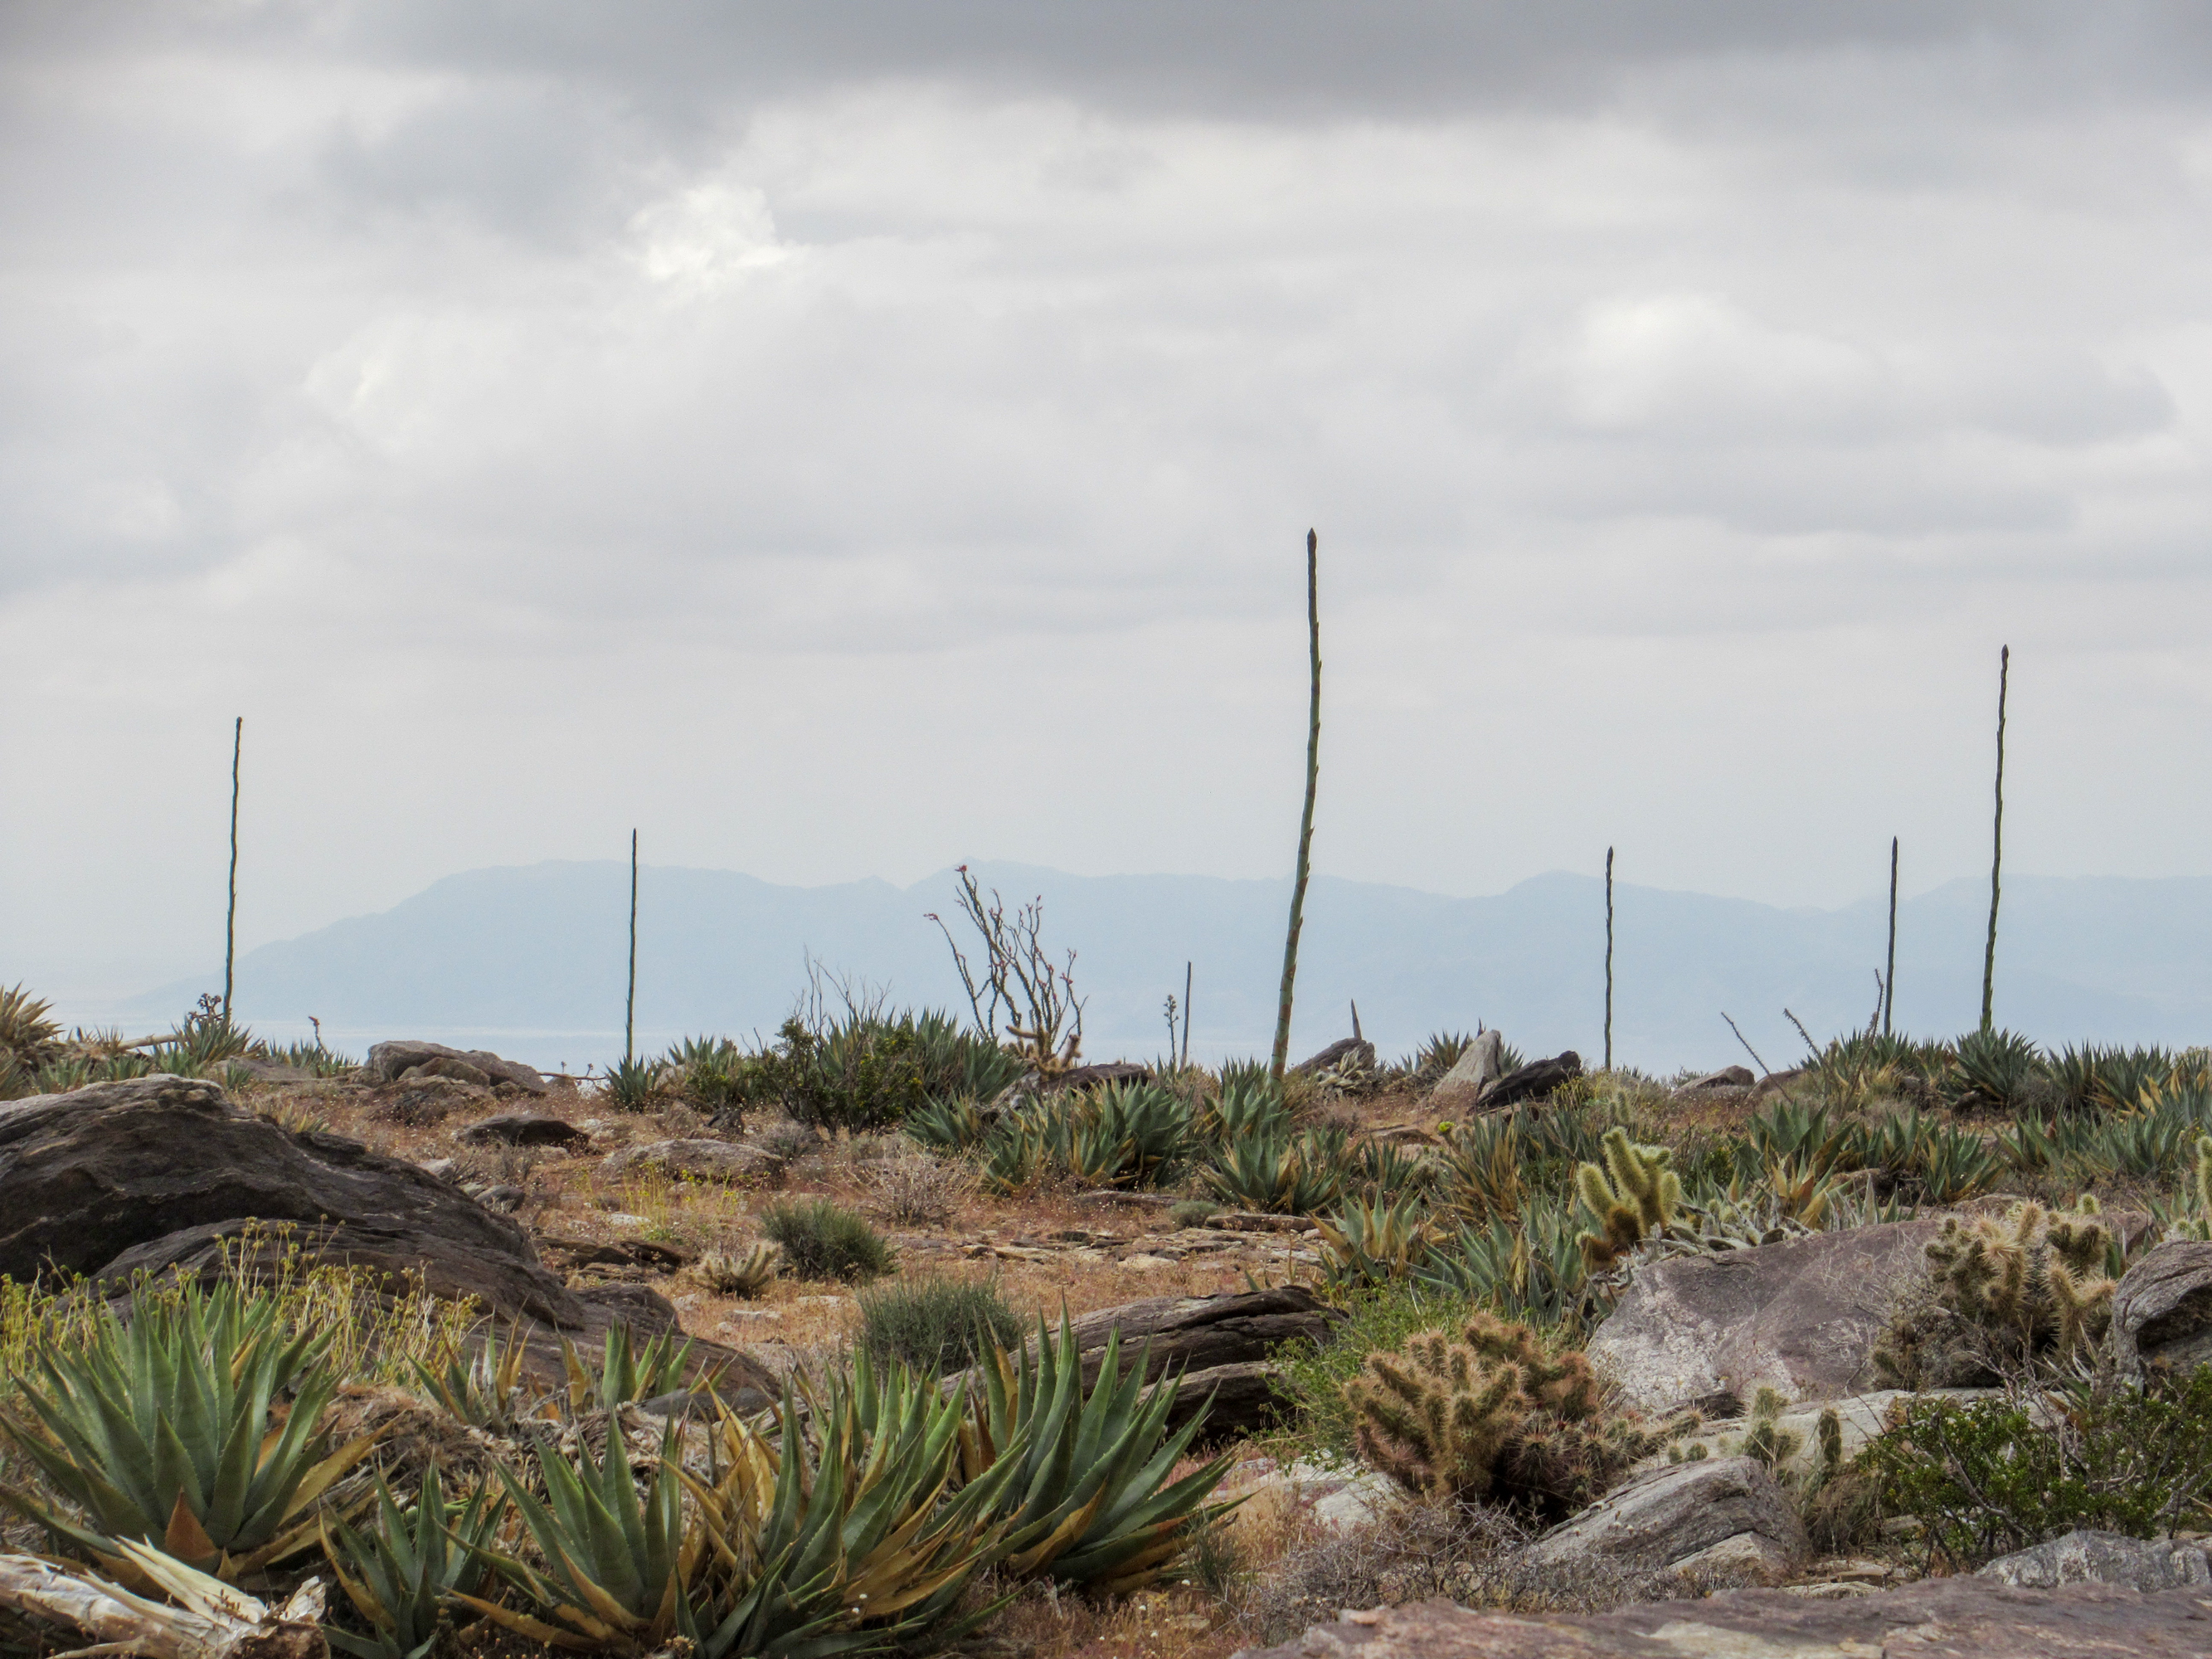 Agave shoots in the Anza Borrego desert.